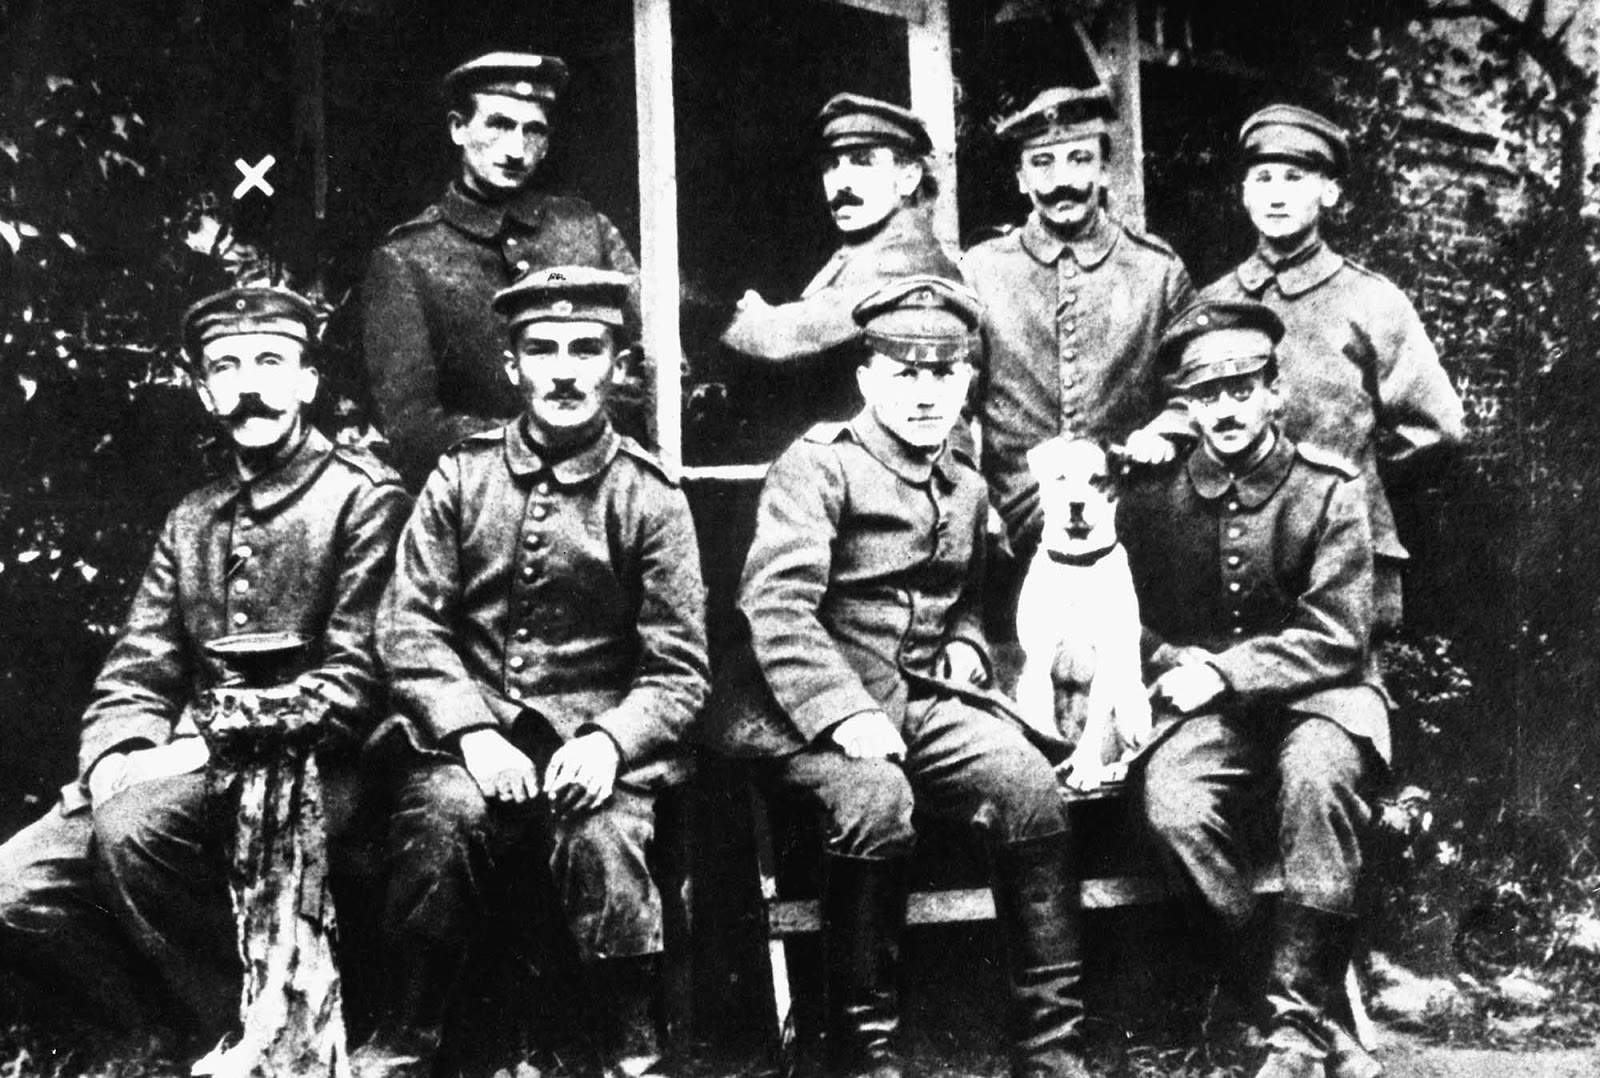 A young Hitler (farthest left at bottom row) posing with other German soldiers and their dog Fuchsl.